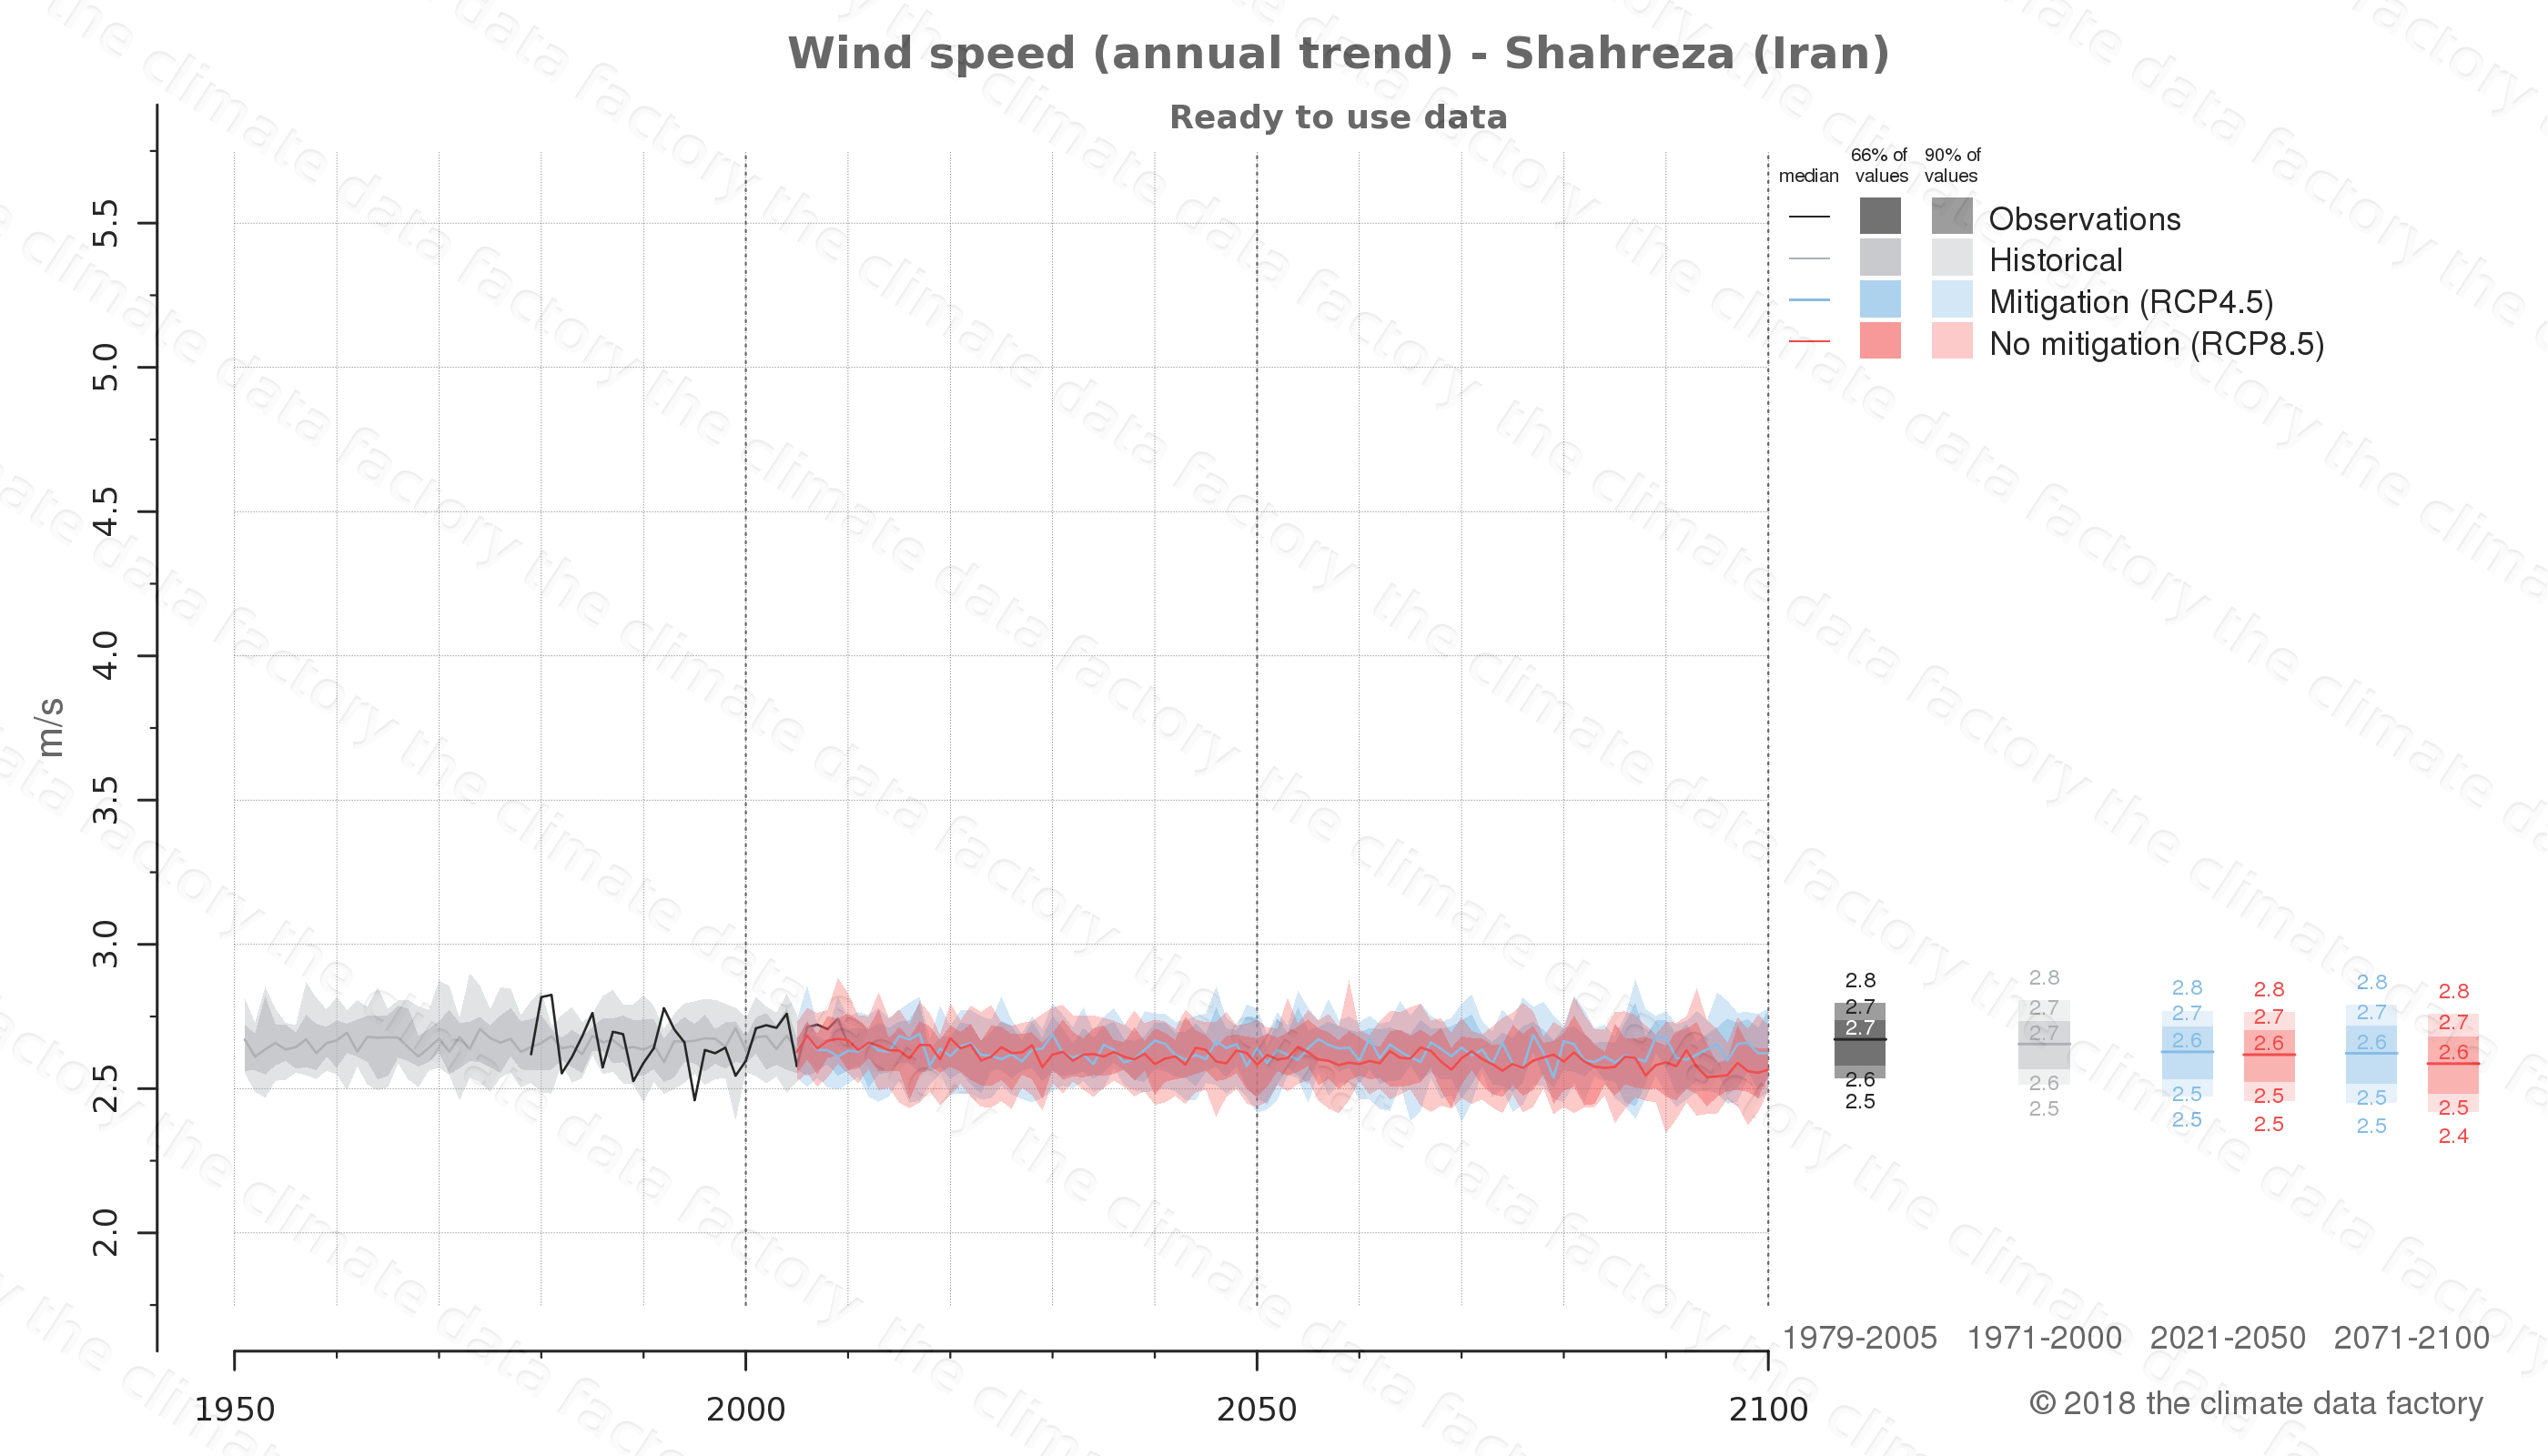 climate change data policy adaptation climate graph city data wind-speed shahreza iran